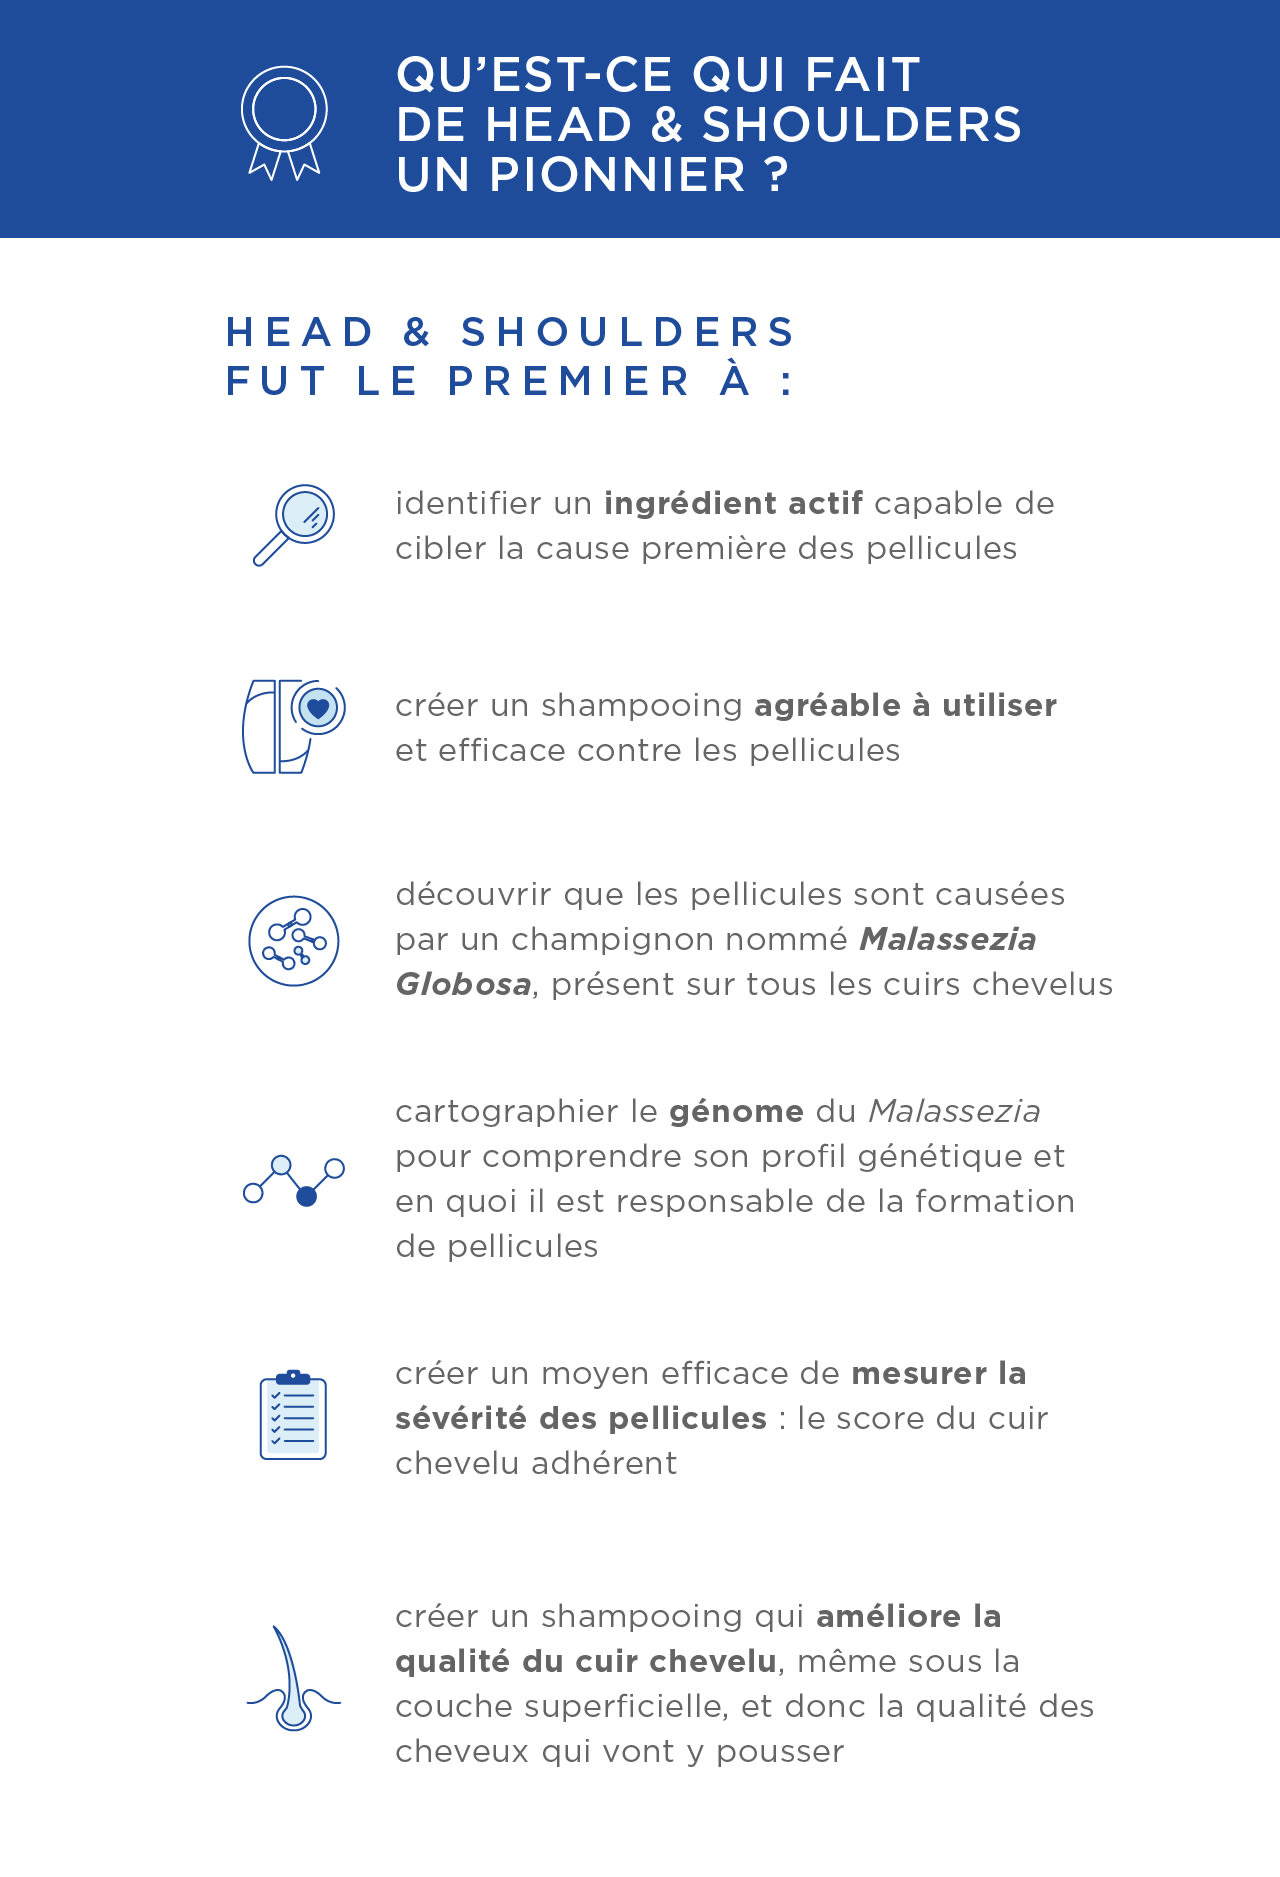 HS_Infographic_Pioneer_FR_UK